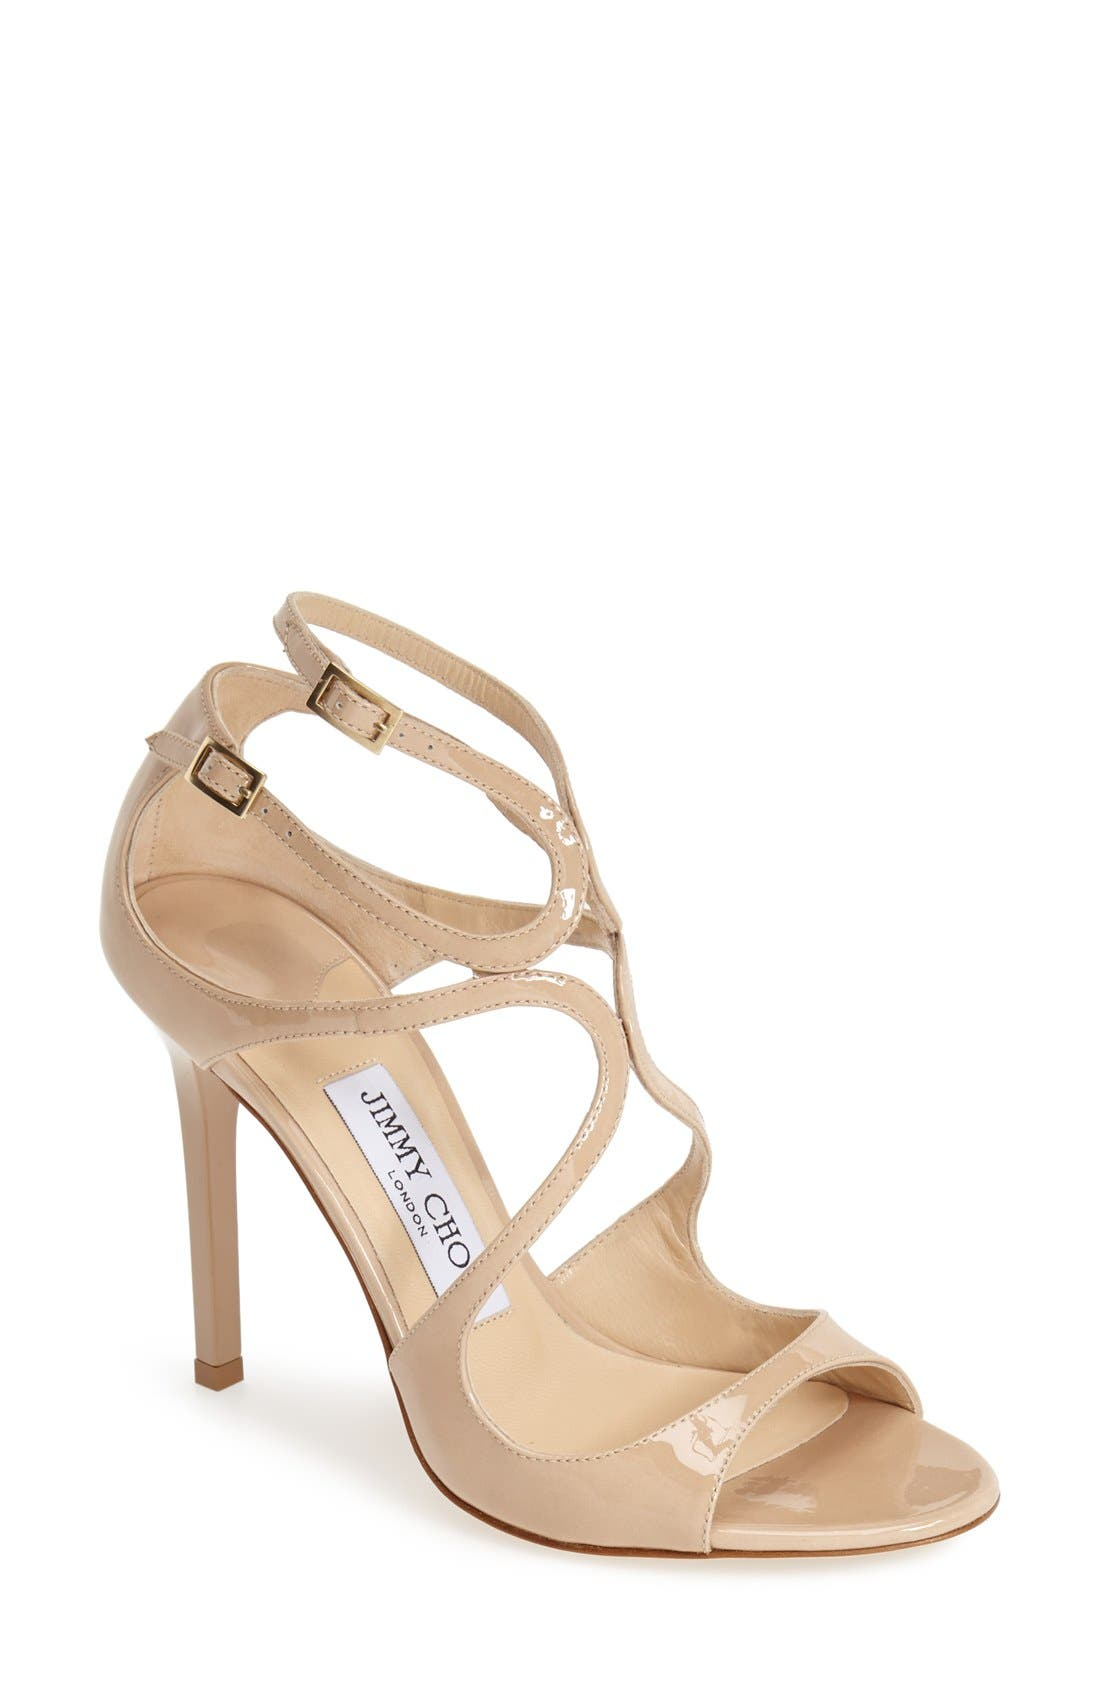 Main Image - Jimmy Choo 'Lang' Sandal (Women)